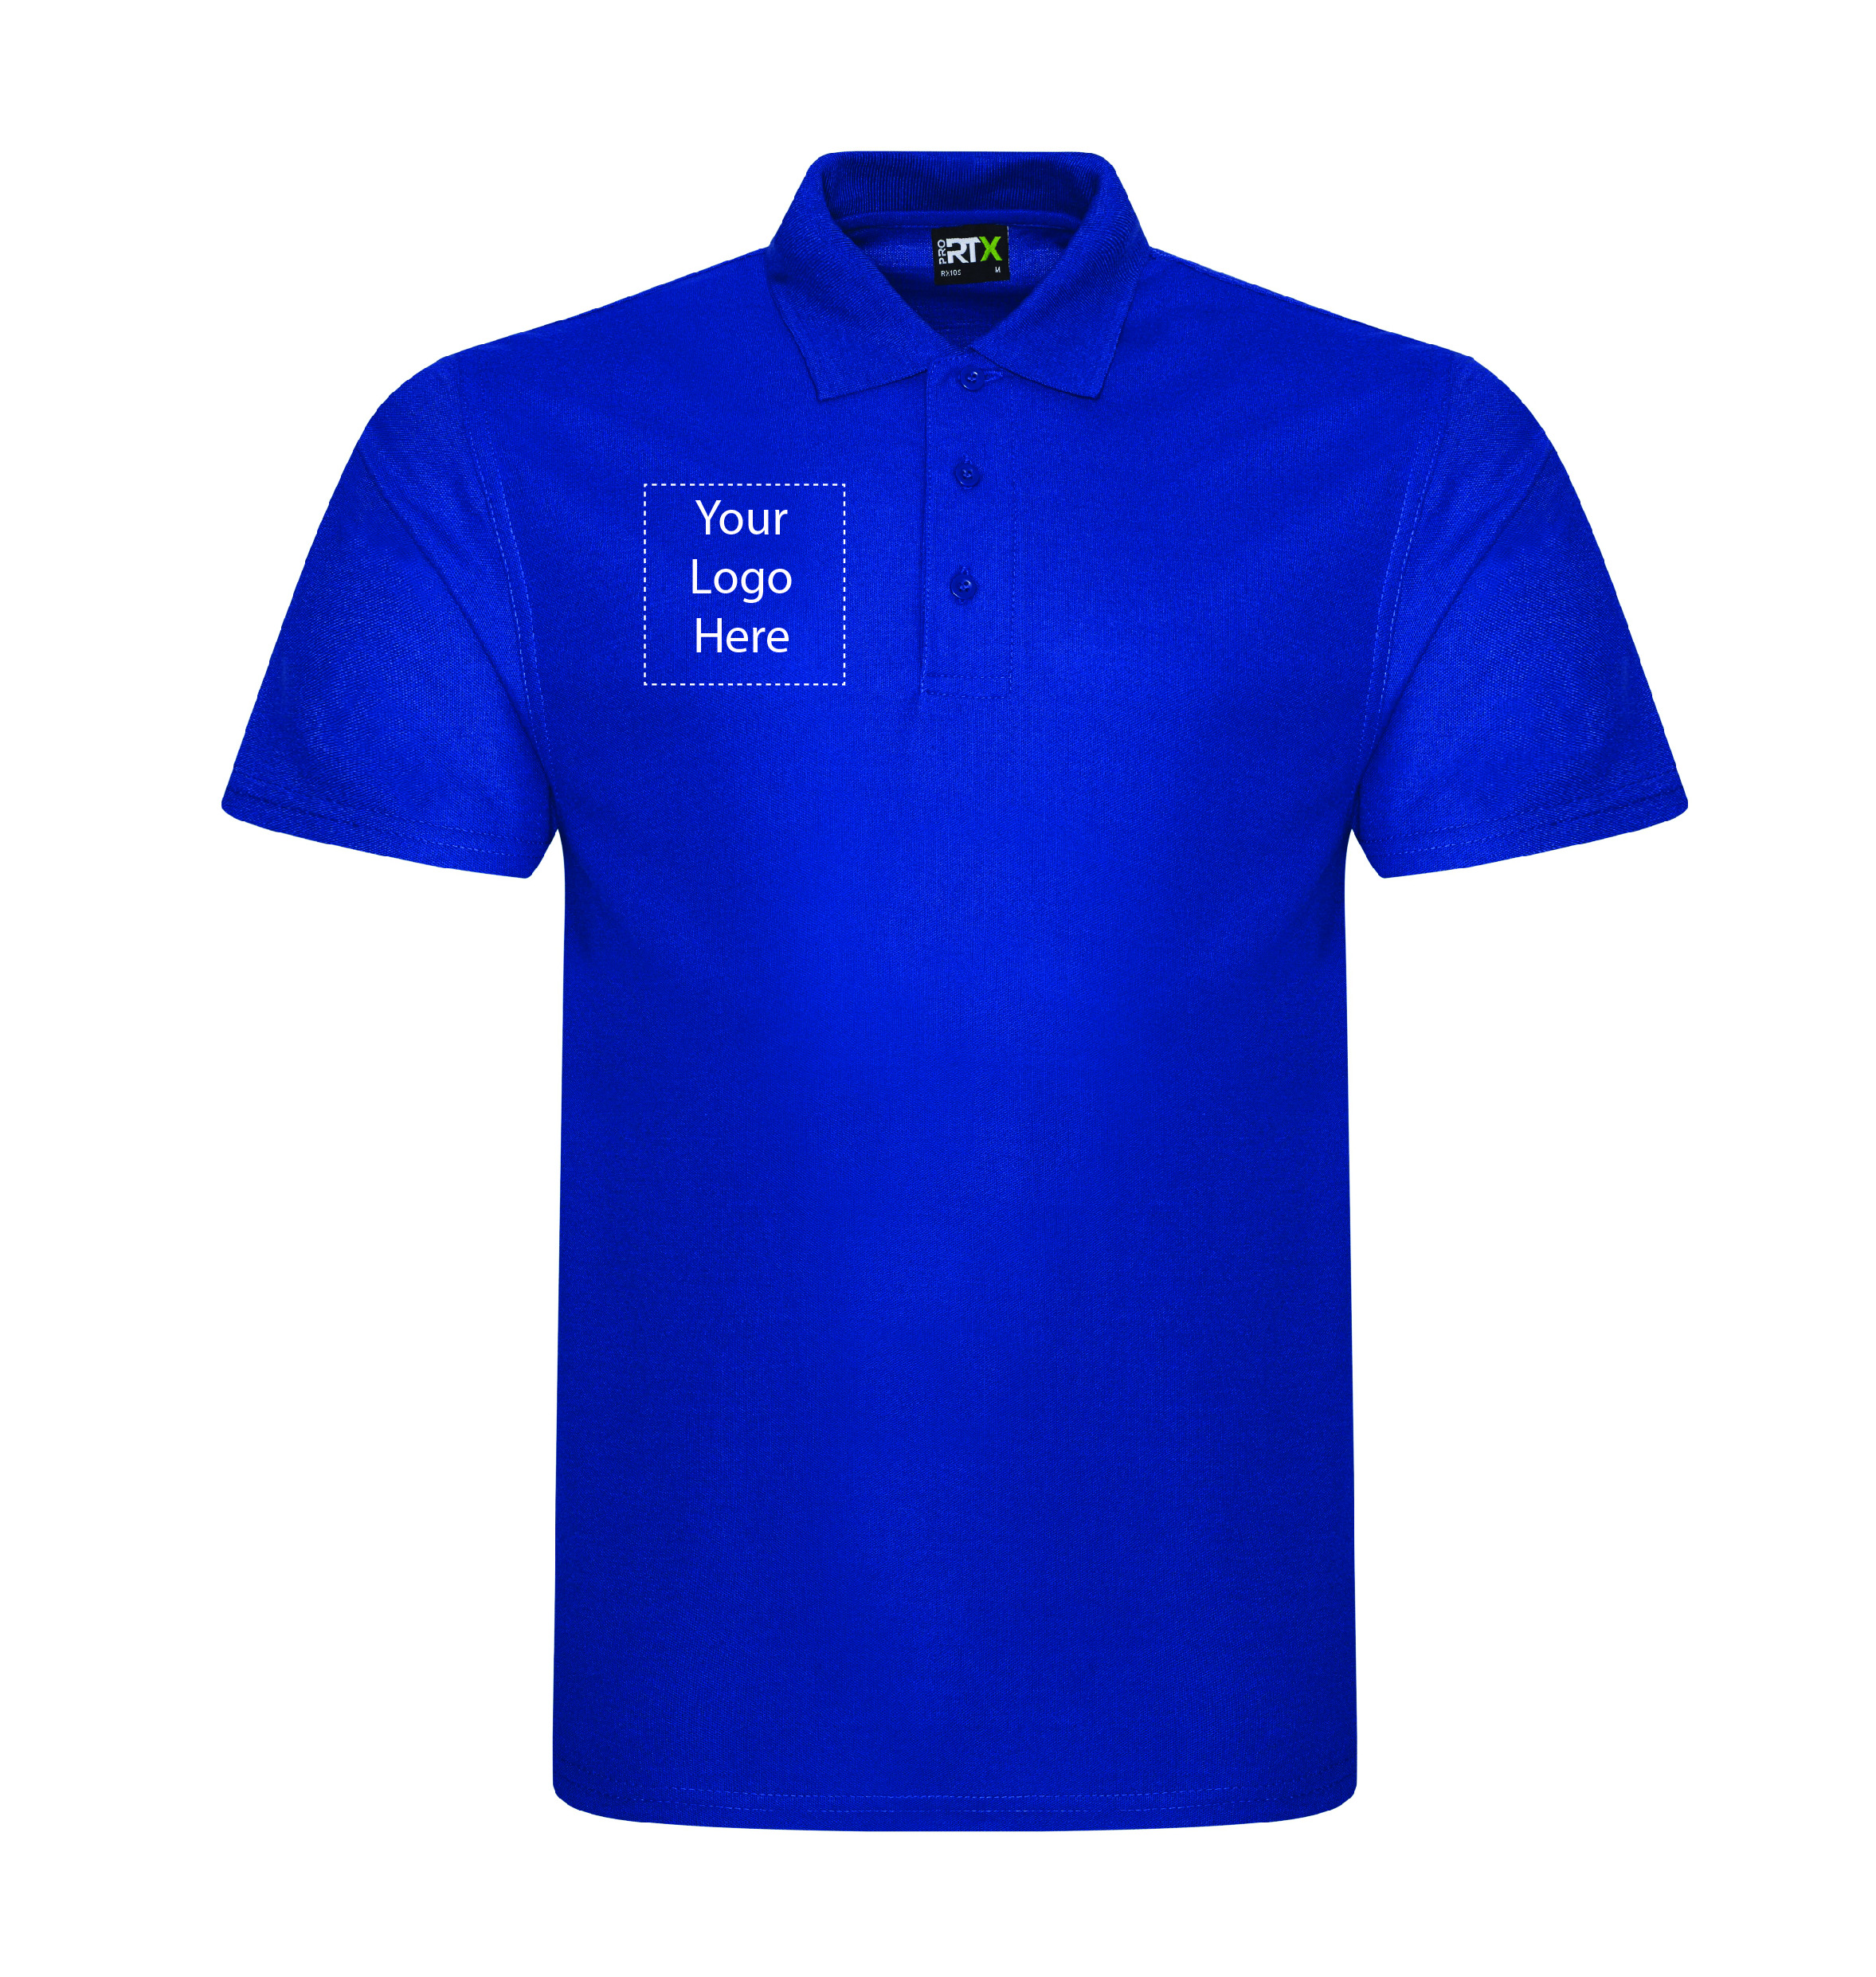 blue polo your logo here.jpg